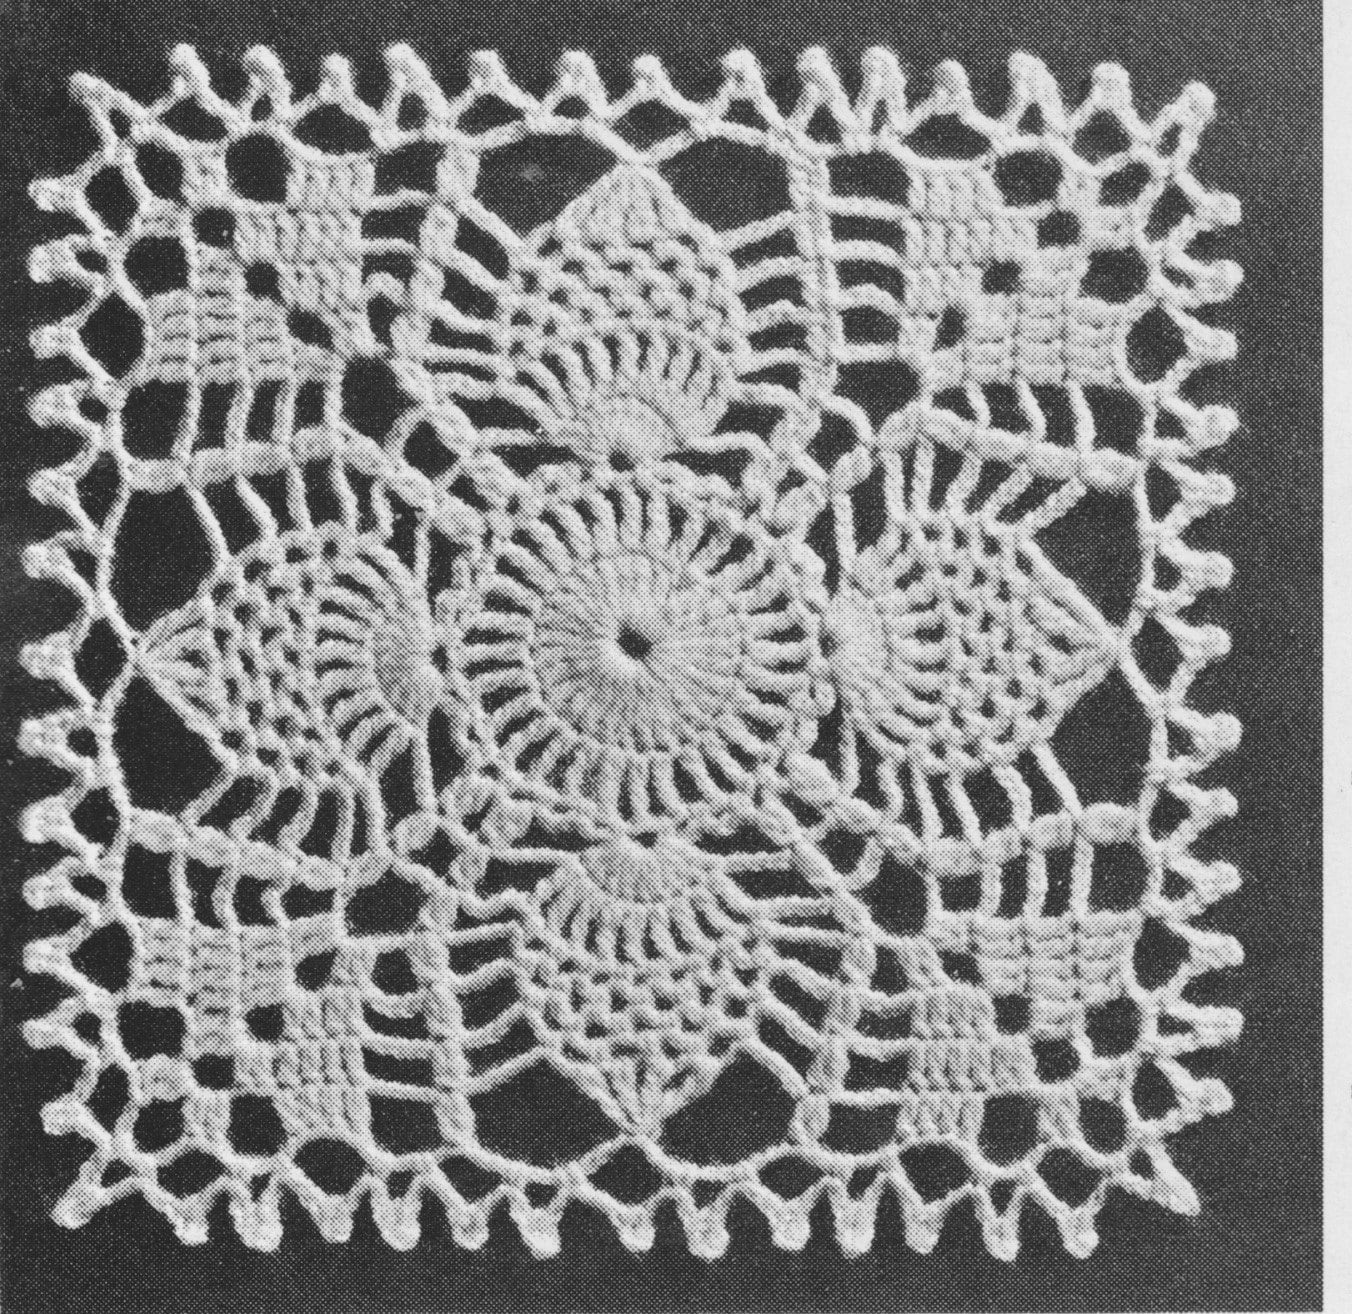 558 Pineapple Afghan Crochet Pattern, Pineapple Motif Design ...